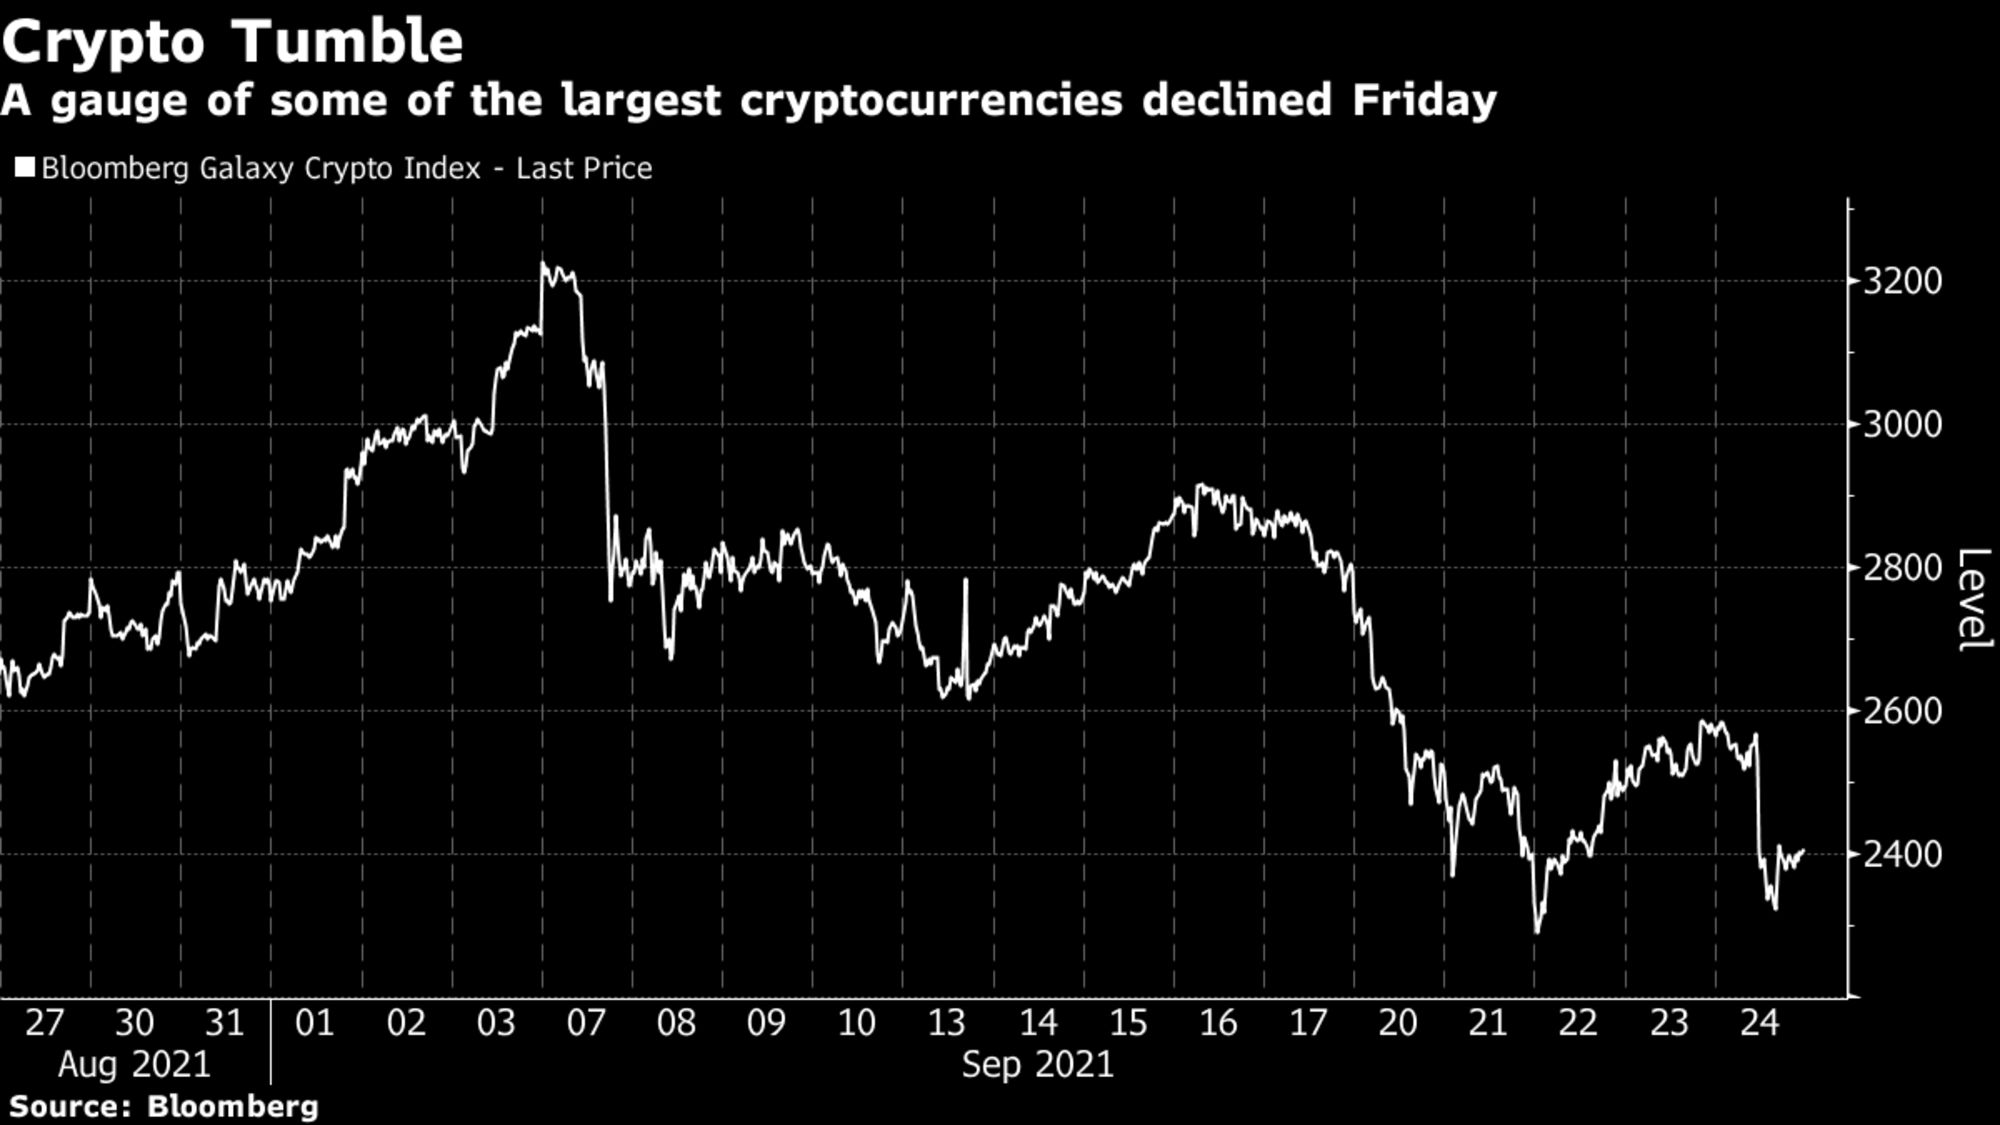 A gauge of some of the largest cryptocurrencies declined Friday